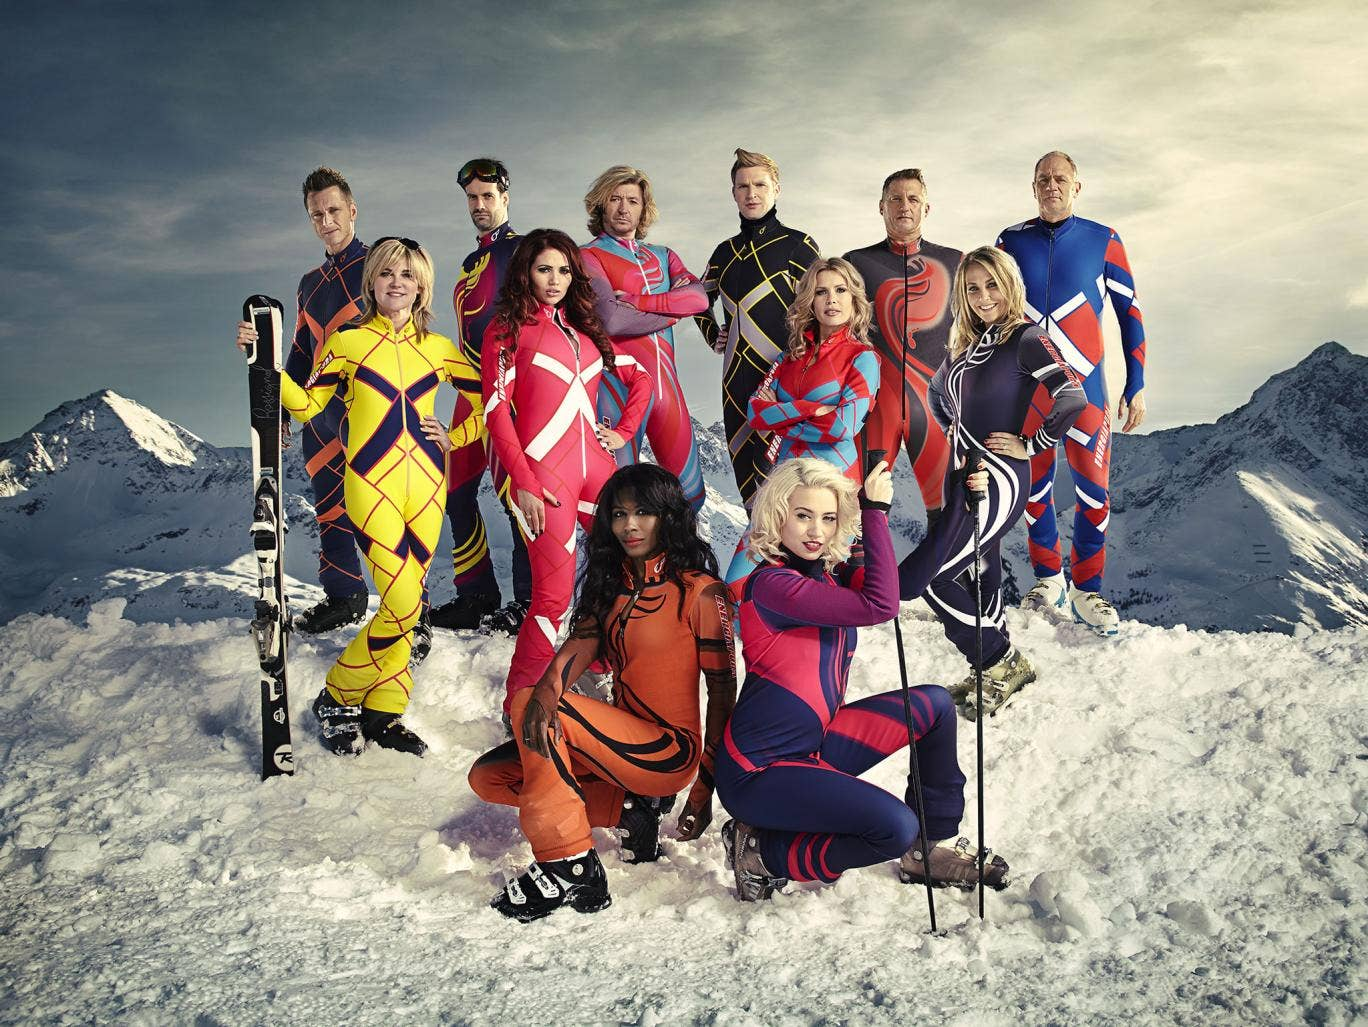 That's one hell of a lot of lycra: These 12 celebrities are in Austria training for new reality TV show, The Jump